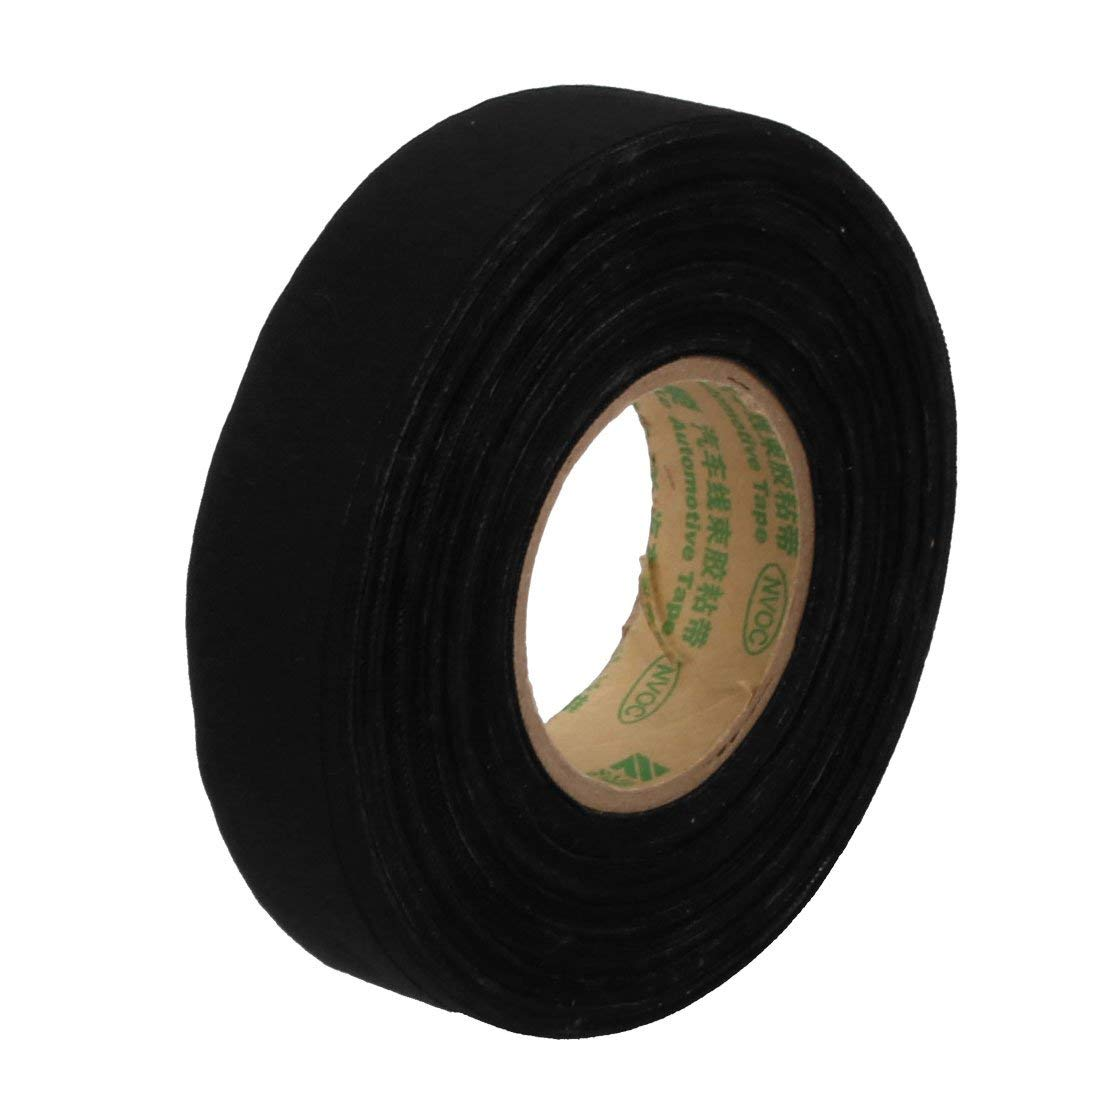 Black 20m Long 19mm Width Insulation Adhesive Cloth Tape Car Wire Harness Tape Miki&Co ZZA-ZY-NET-072011